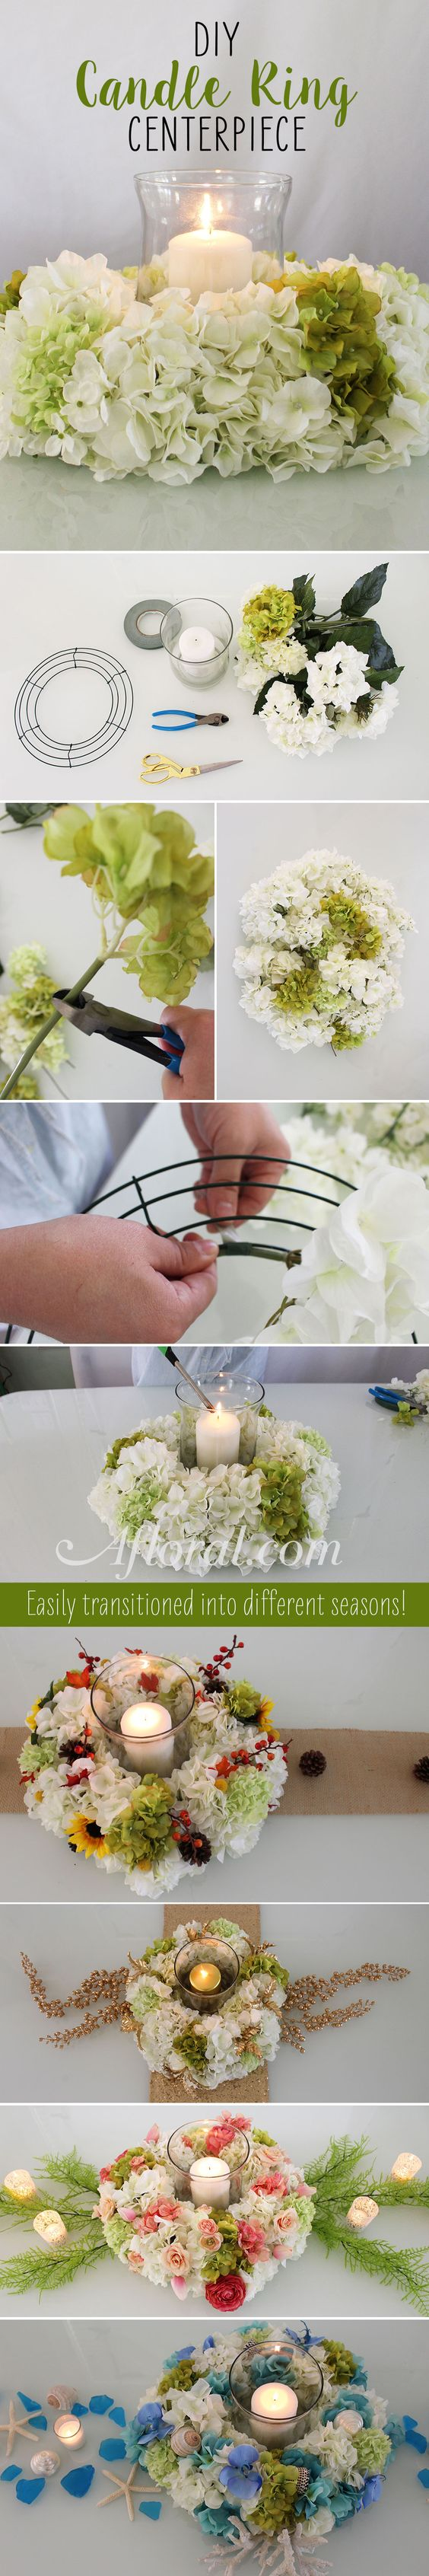 DIY Hydrangea Candle Ring Centerpiece